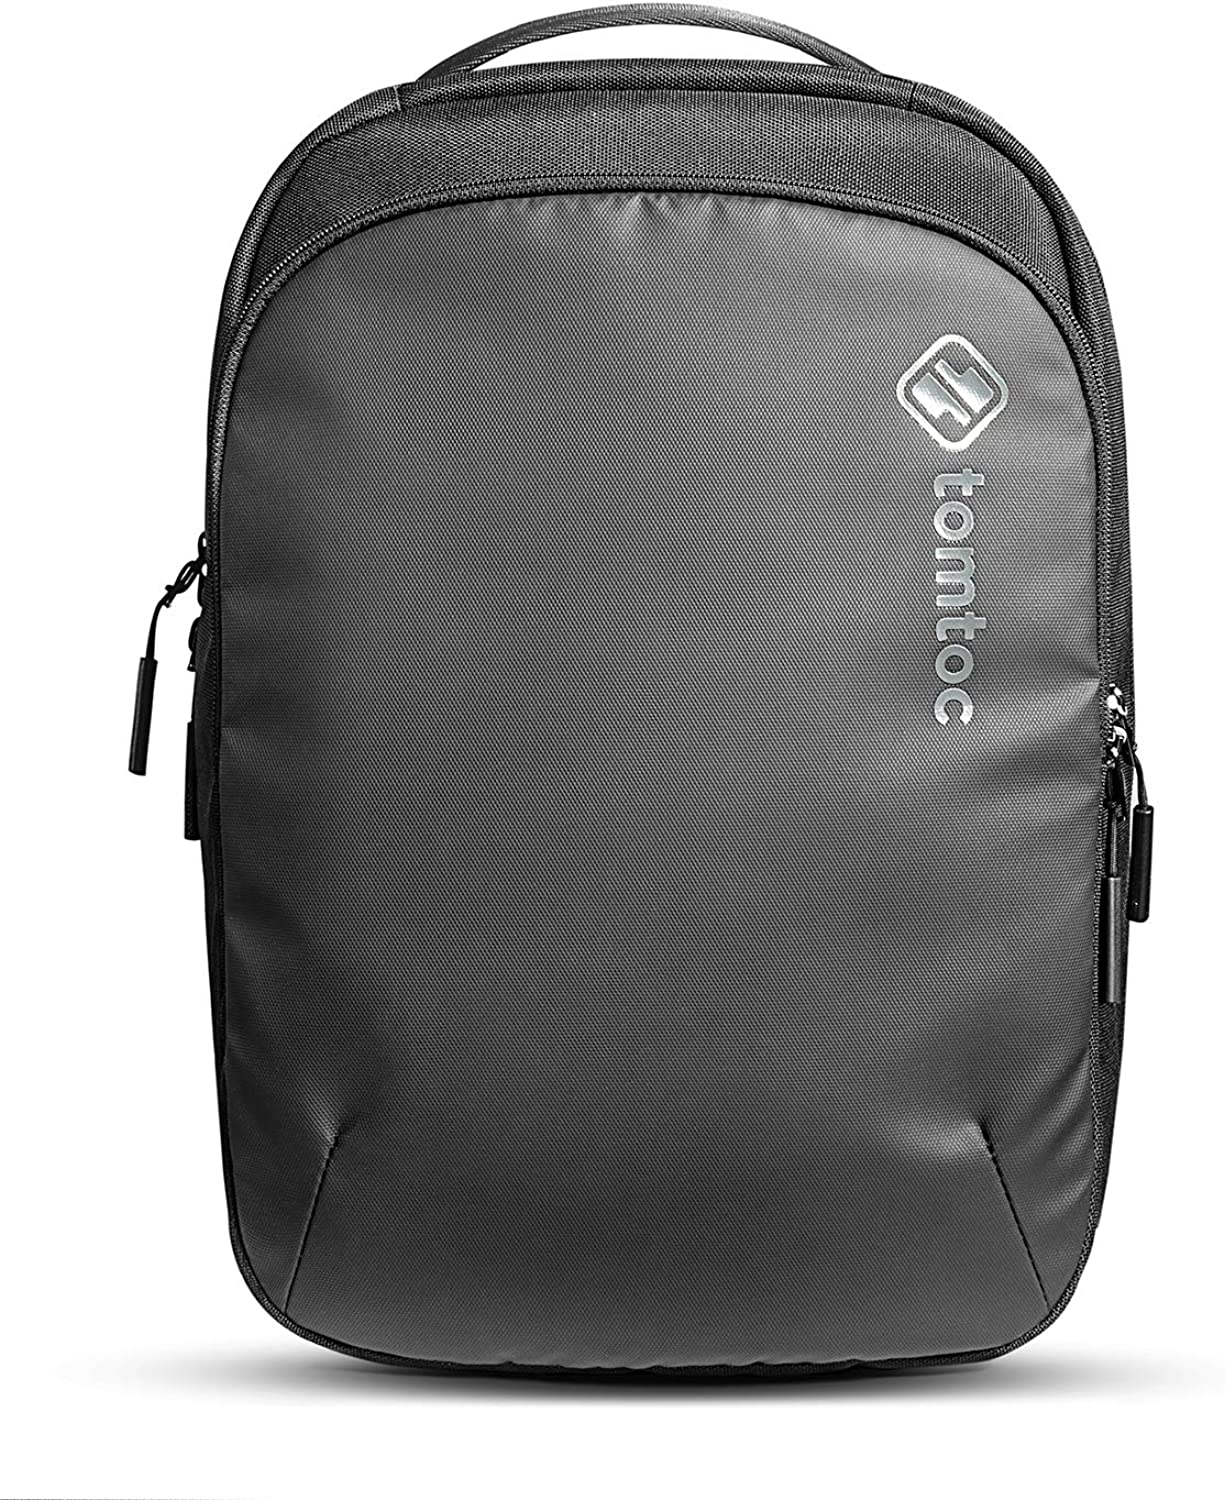 tomtoc Slim Cordura Nylon Laptop Backpack with CornerArmor Protection, Lightweight Business Backpack for up to 16-inch MacBook Pro, Water-resistant College School Knapsack, 15L